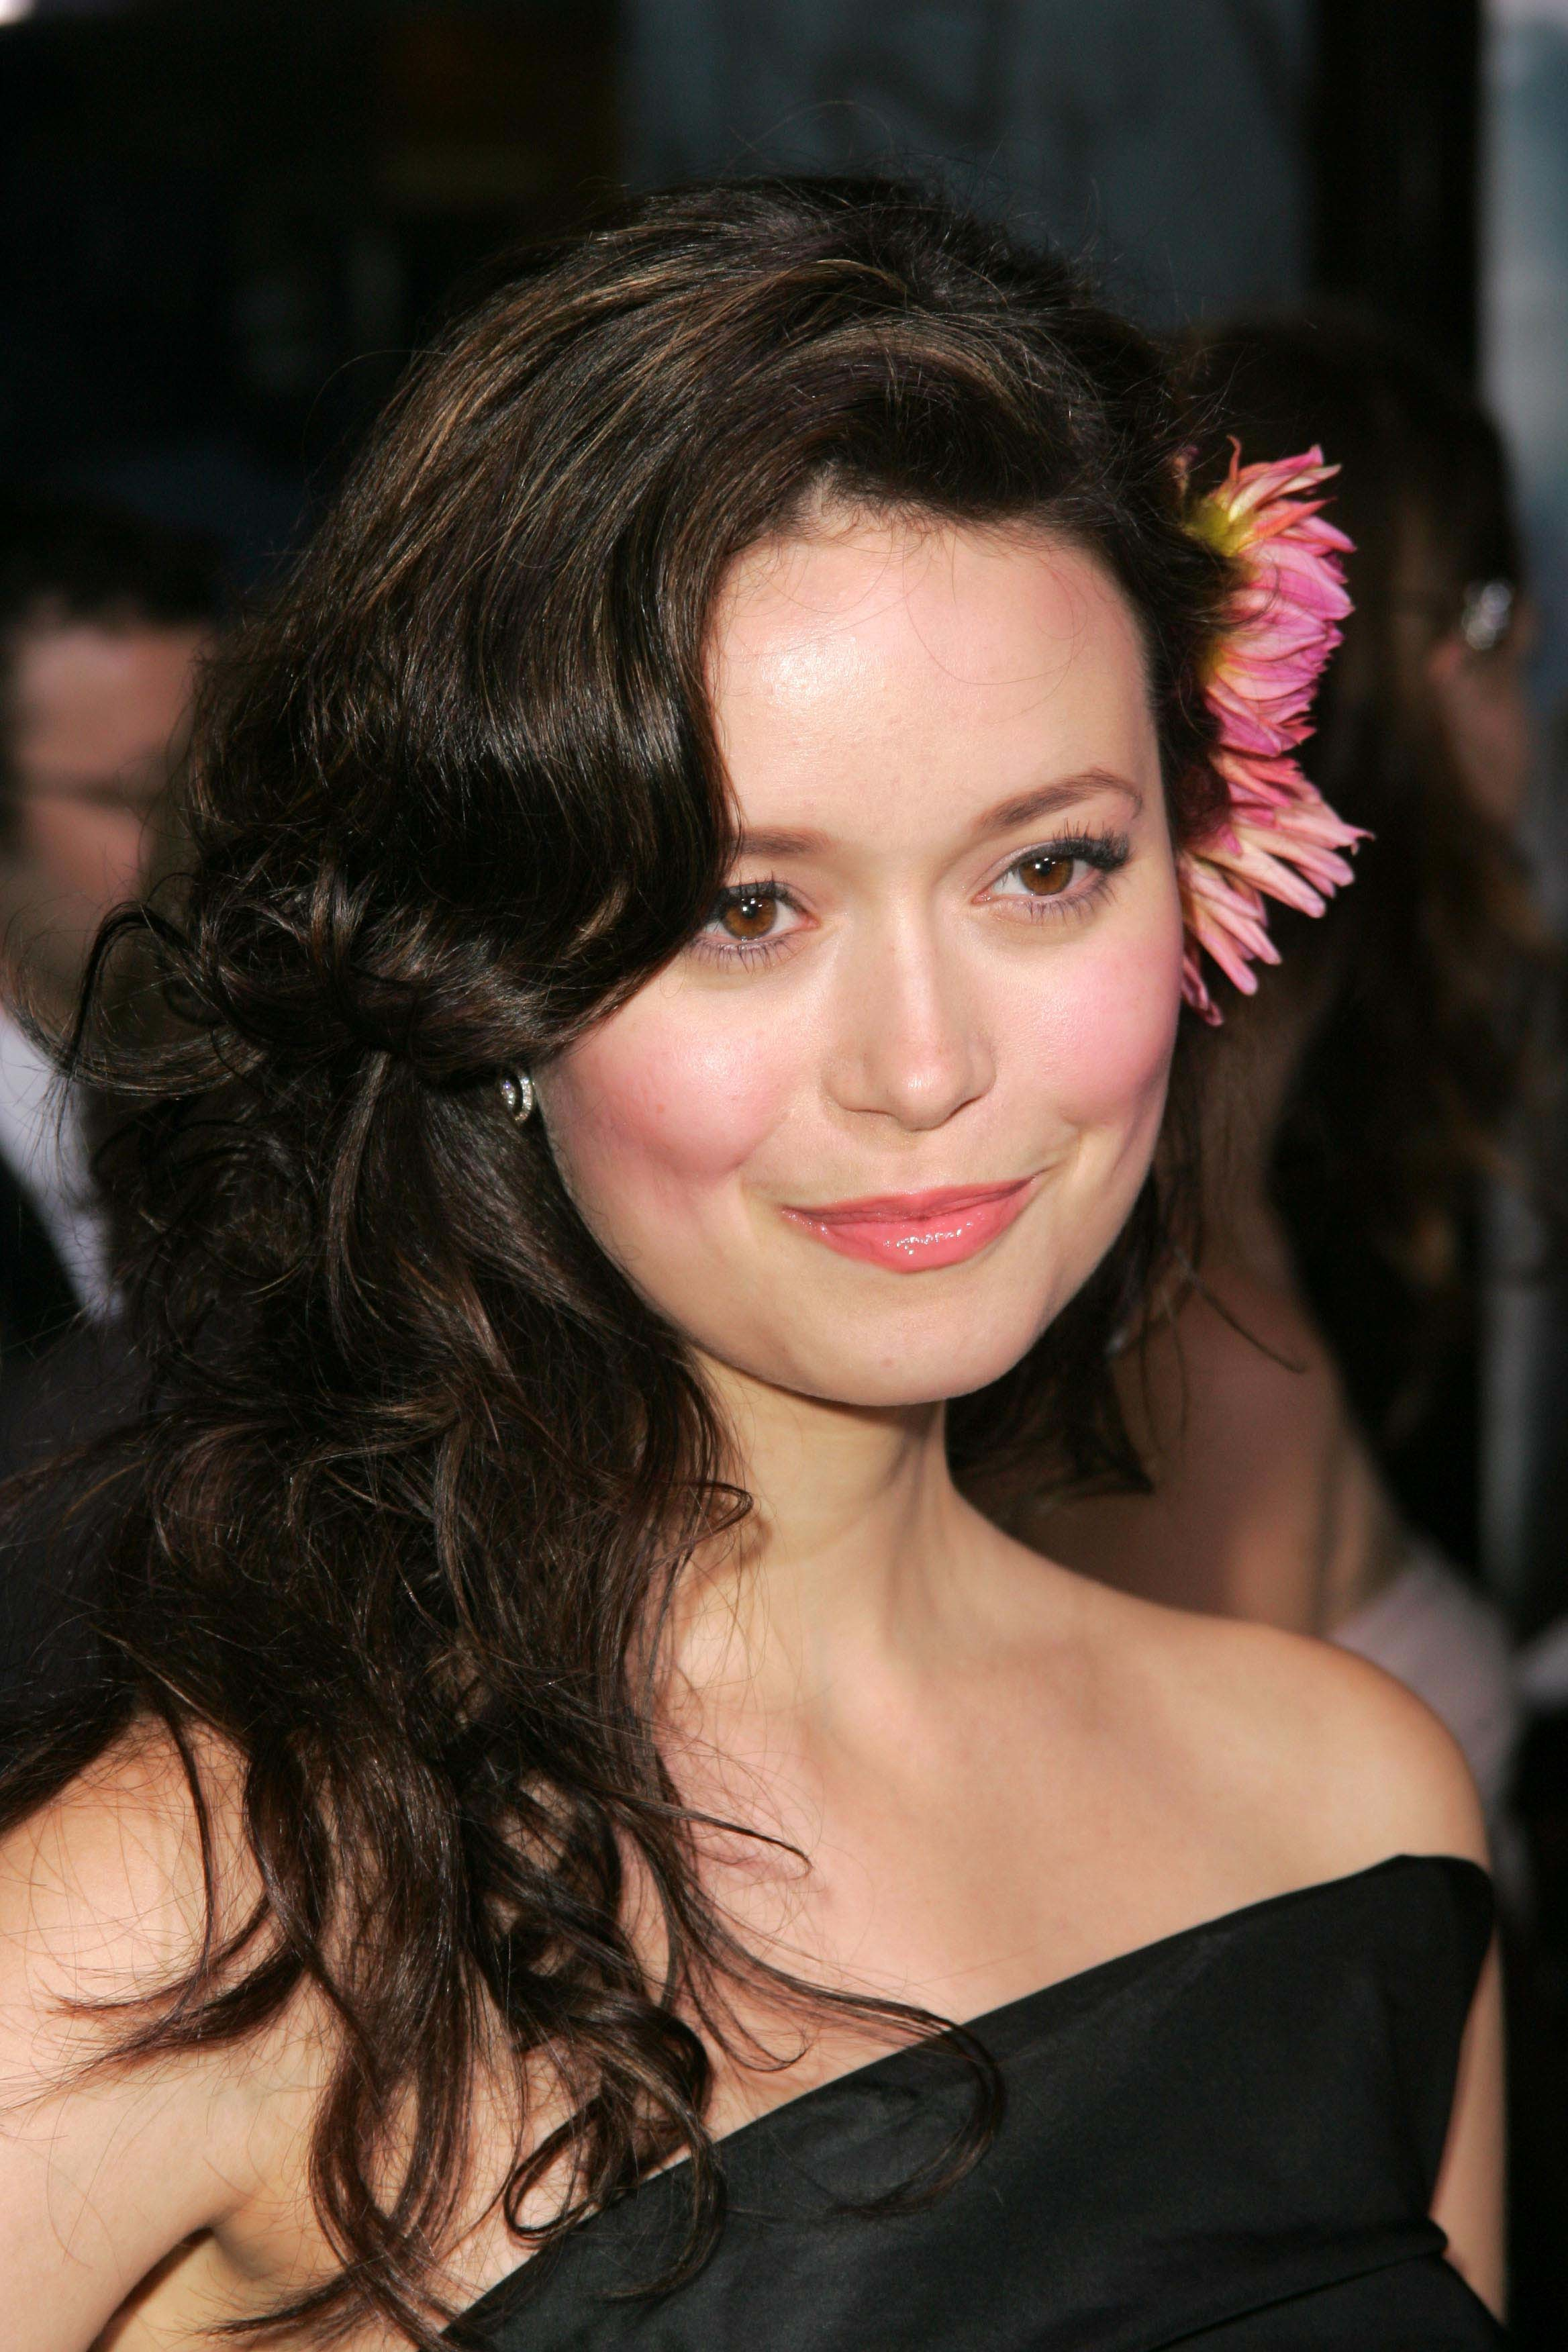 woman summer glau